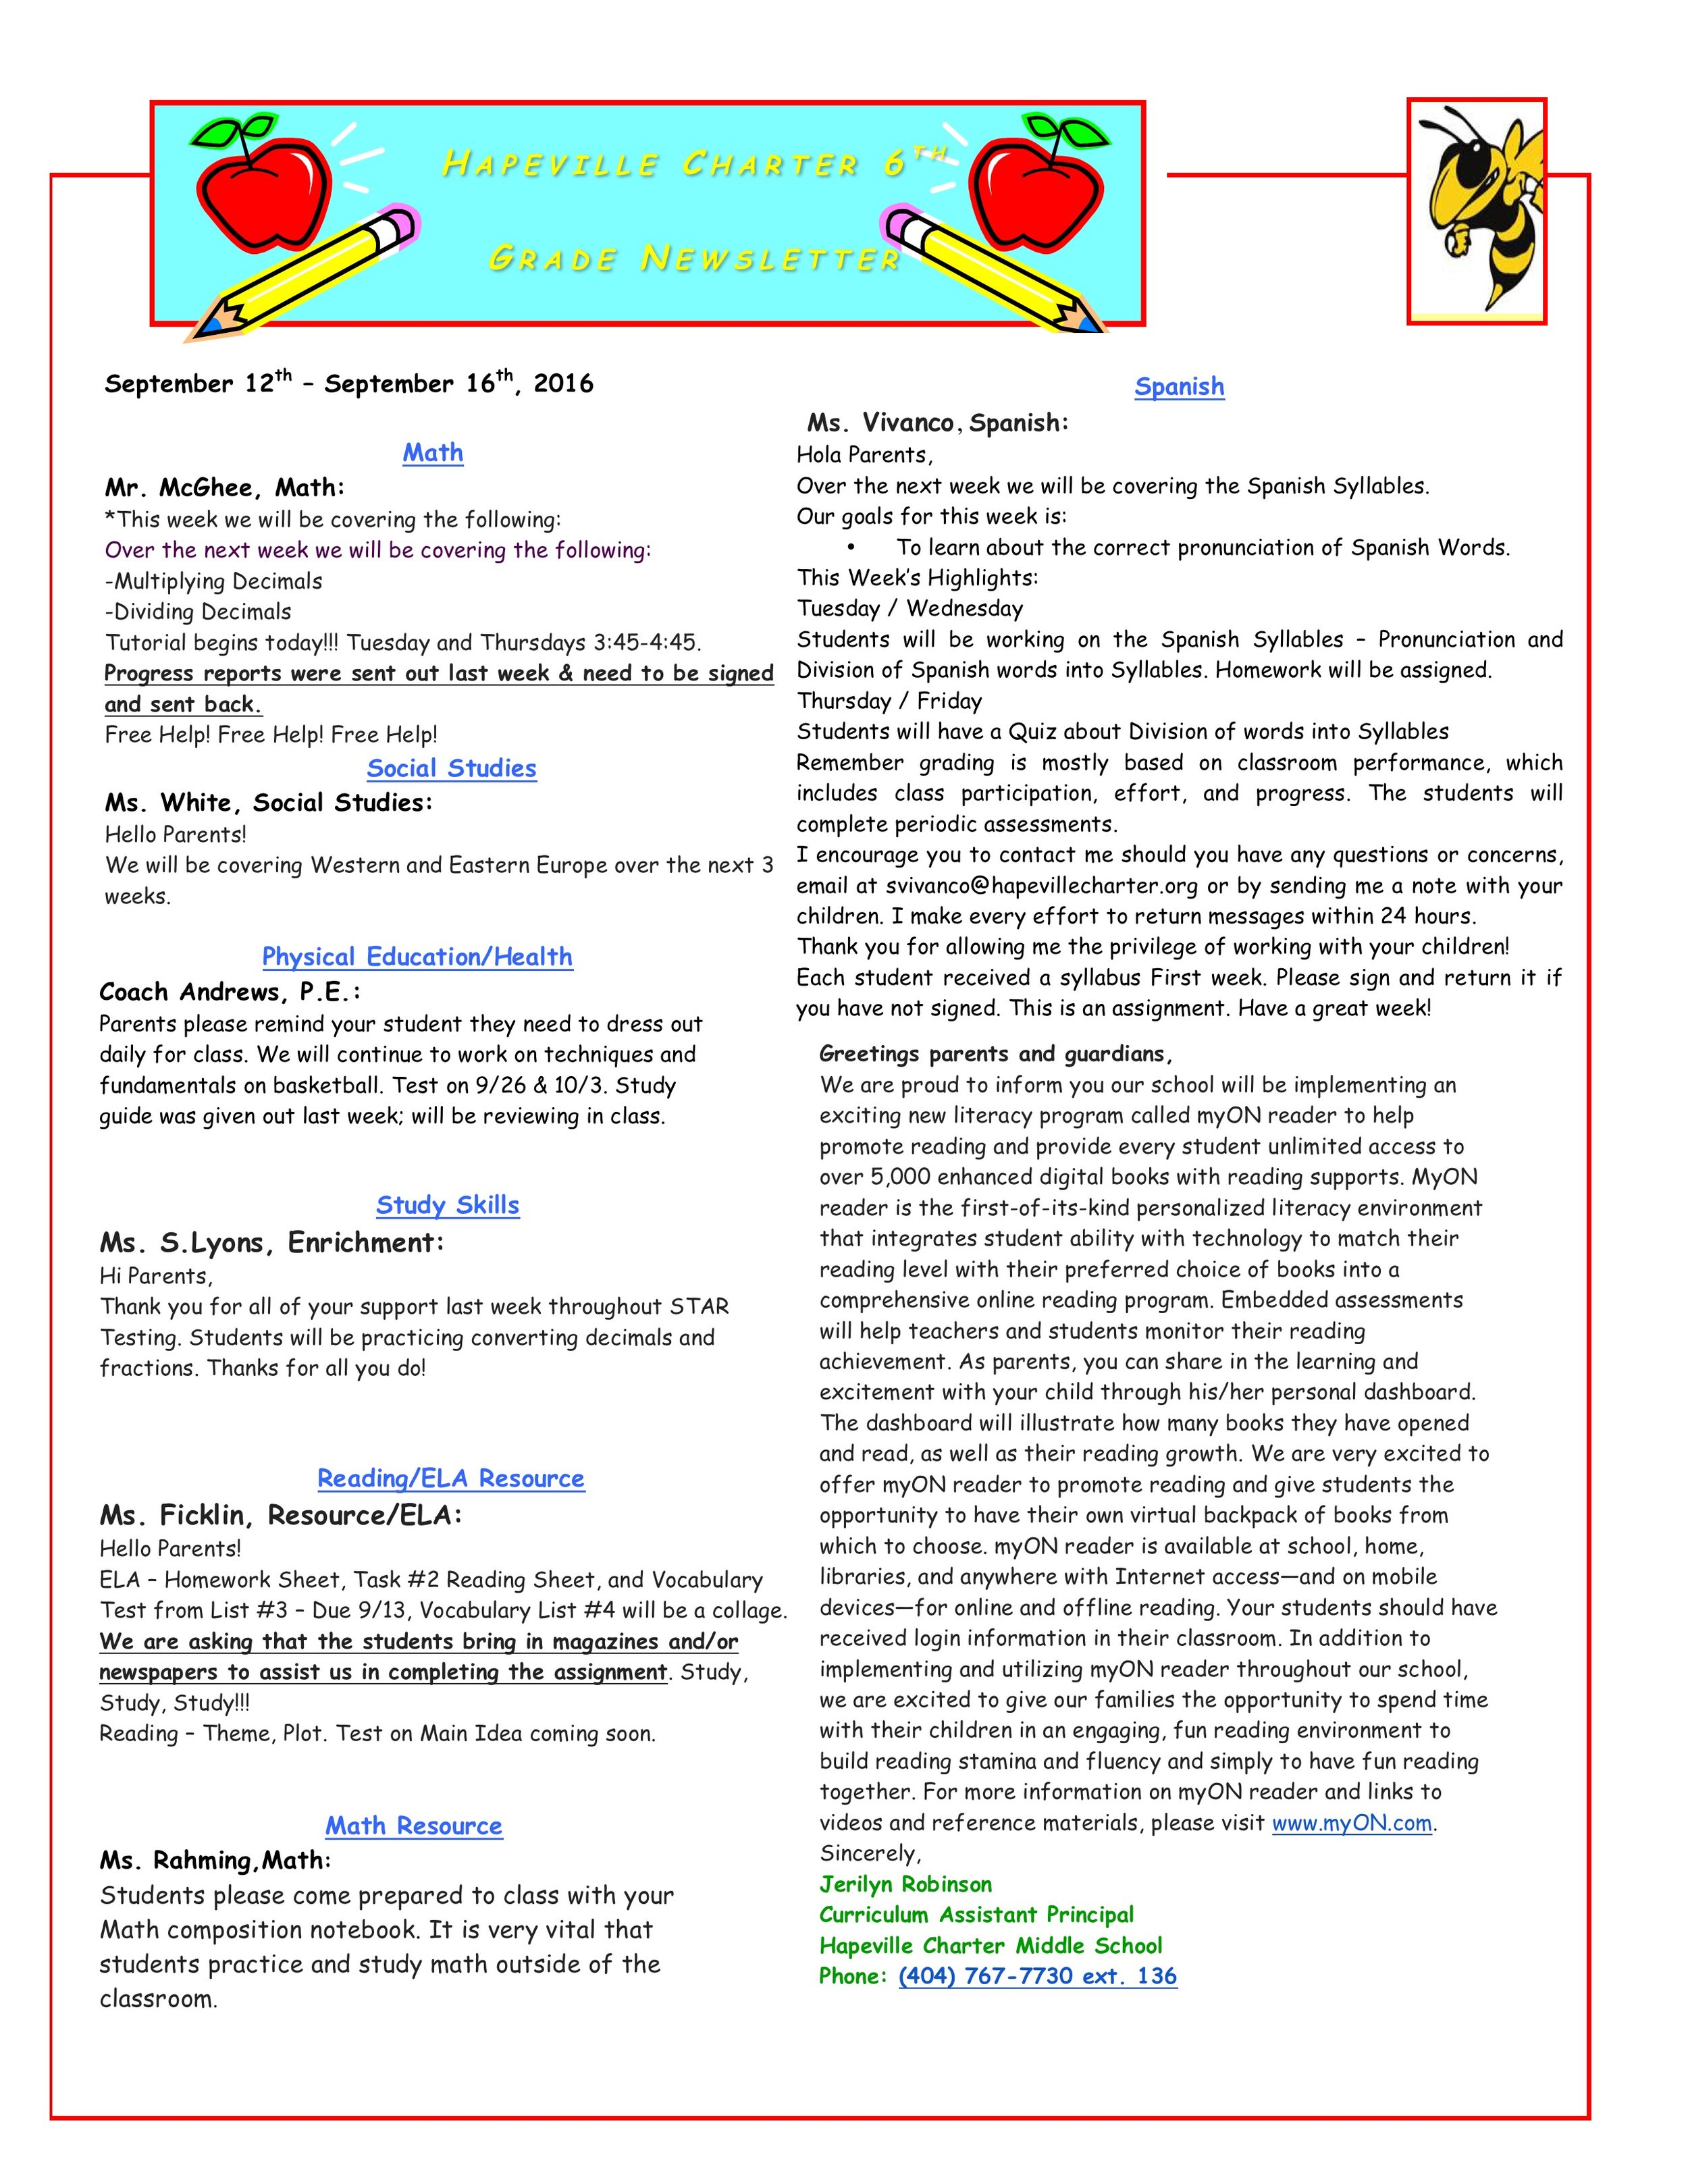 Newsletter Image6th Grade Newsletter 9-12.jpeg